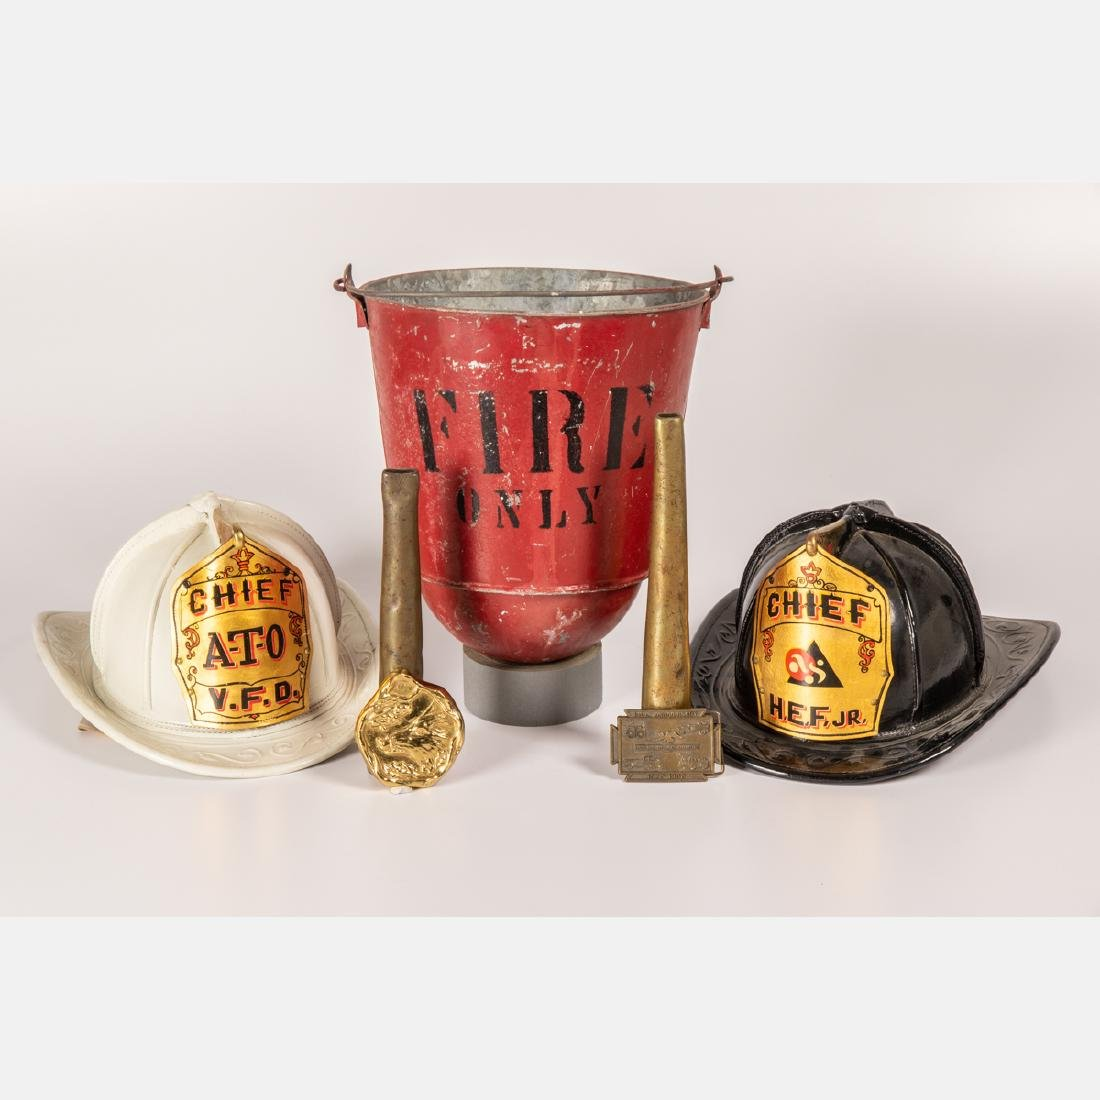 A Miscellaneous Collection of Firemen Themed Decorative